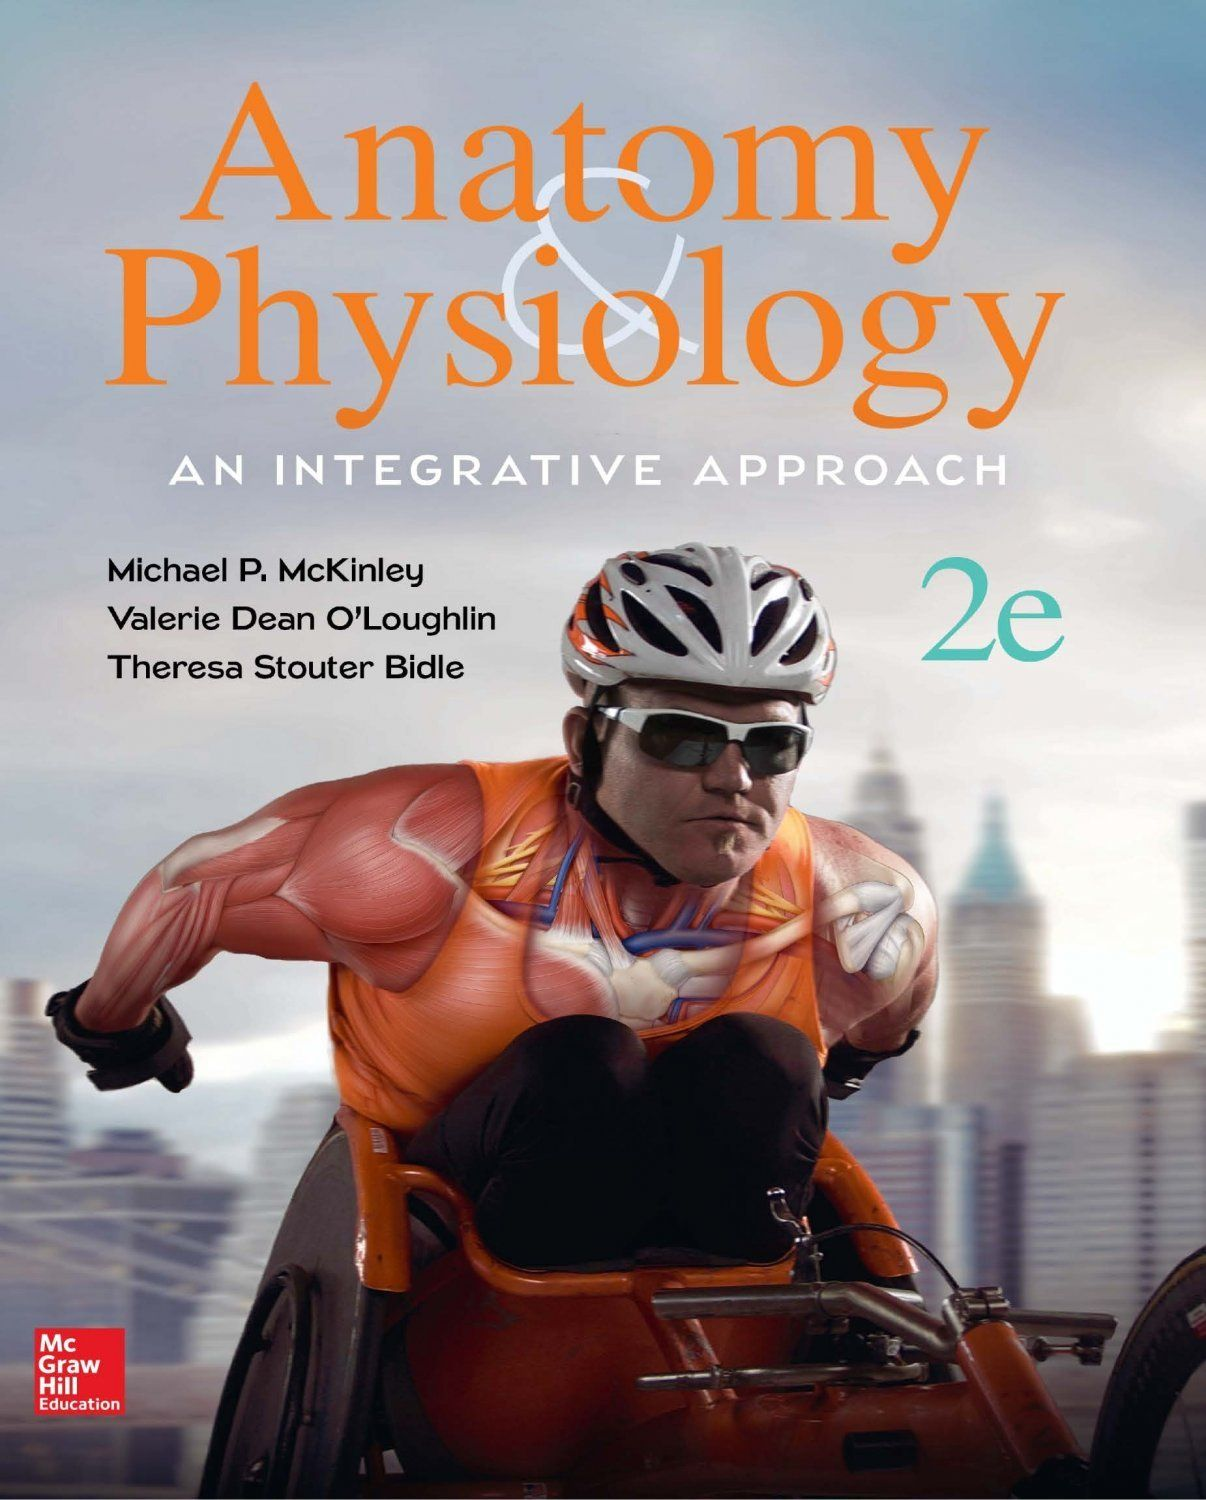 Anatomy+&+Physiology+An+Integrative+Approach+2nd+Ed+by+McKinley+( ...